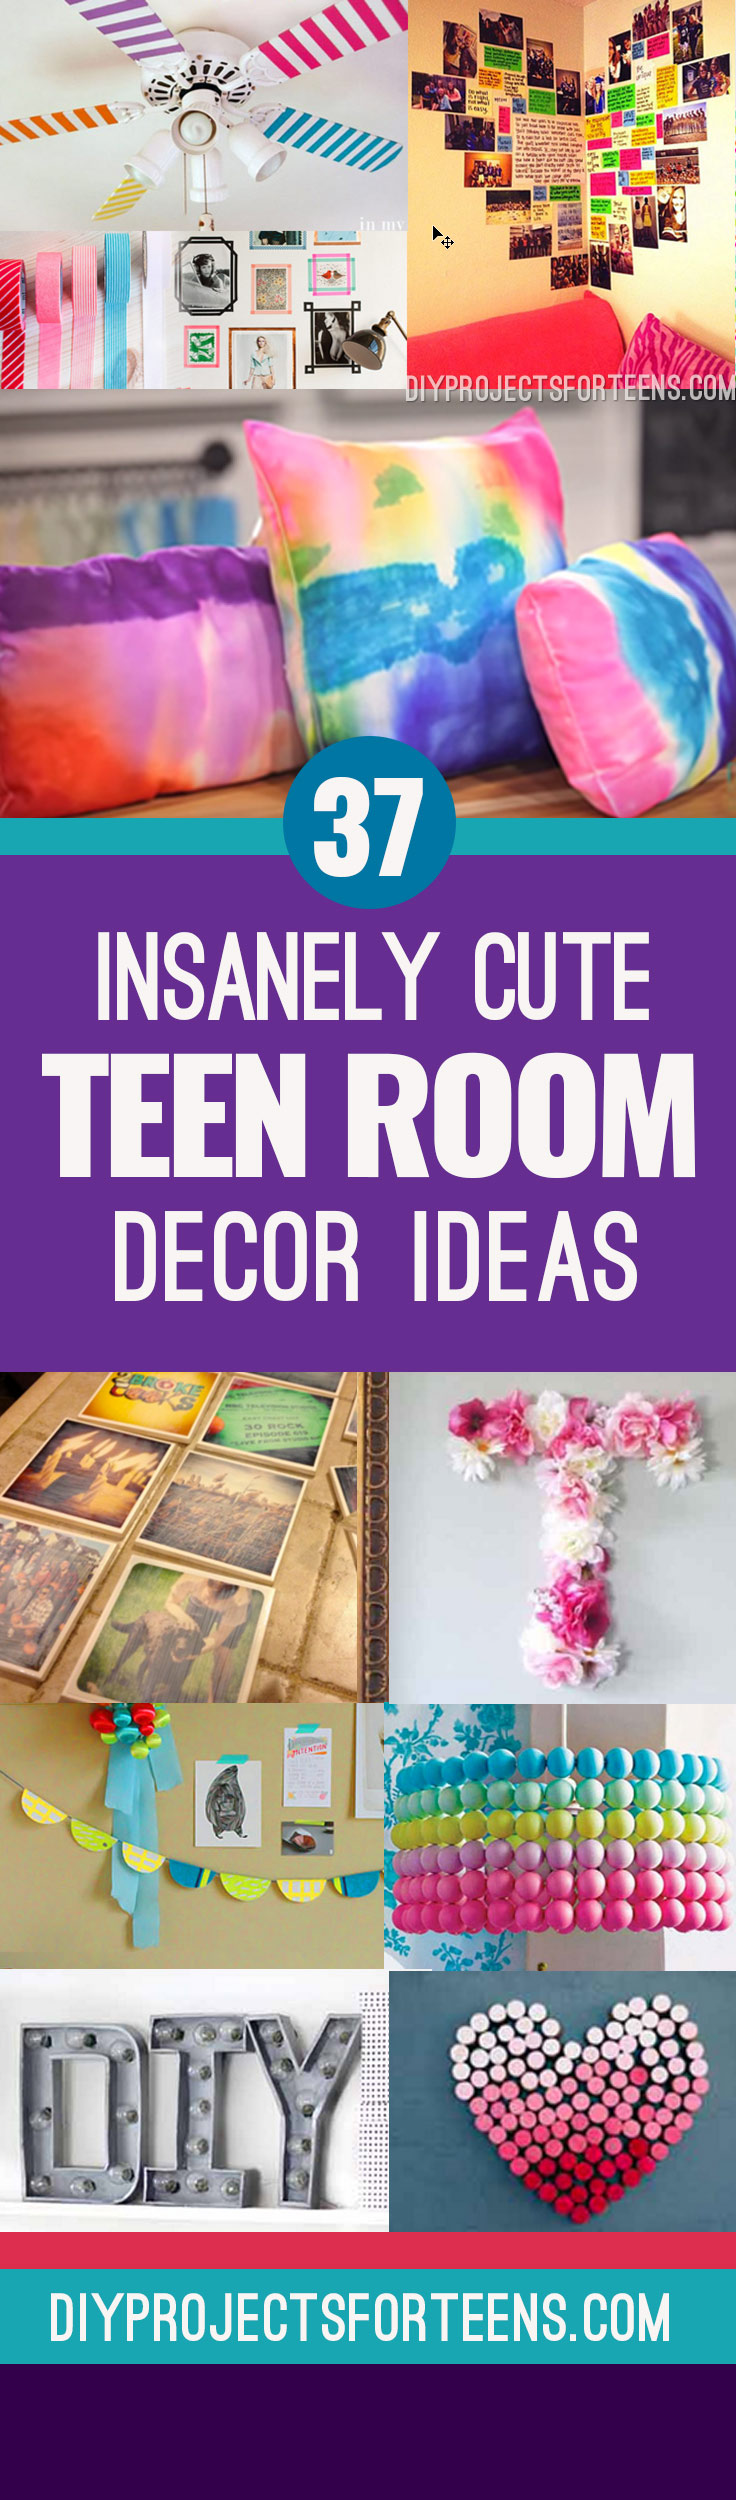 diy crafts for bedroom decor